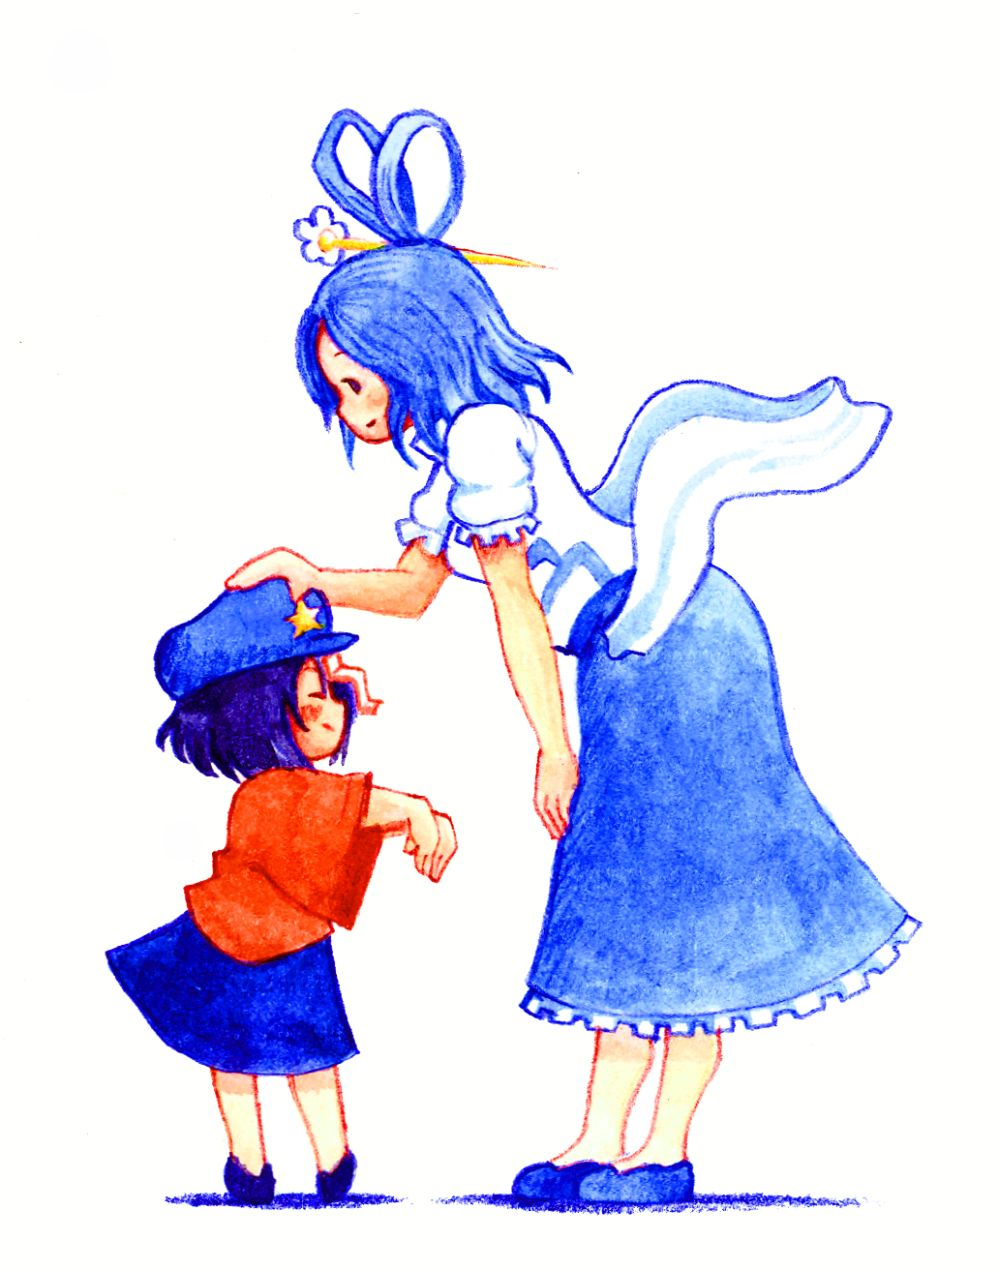 acrylic_paint_(medium) blue_hair child closed_eyes colored_pencil_(medium) dress eyes_closed hair_ornament hair_rings hair_stick hand_on_knee hat highres kaku_seiga leaning_forward miyako_yoshika multiple_girls ofuda outstretched_arms petting shawl shoes short_hair simple_background skirt smile star terajin touhou traditional_media white_background young zombie_pose